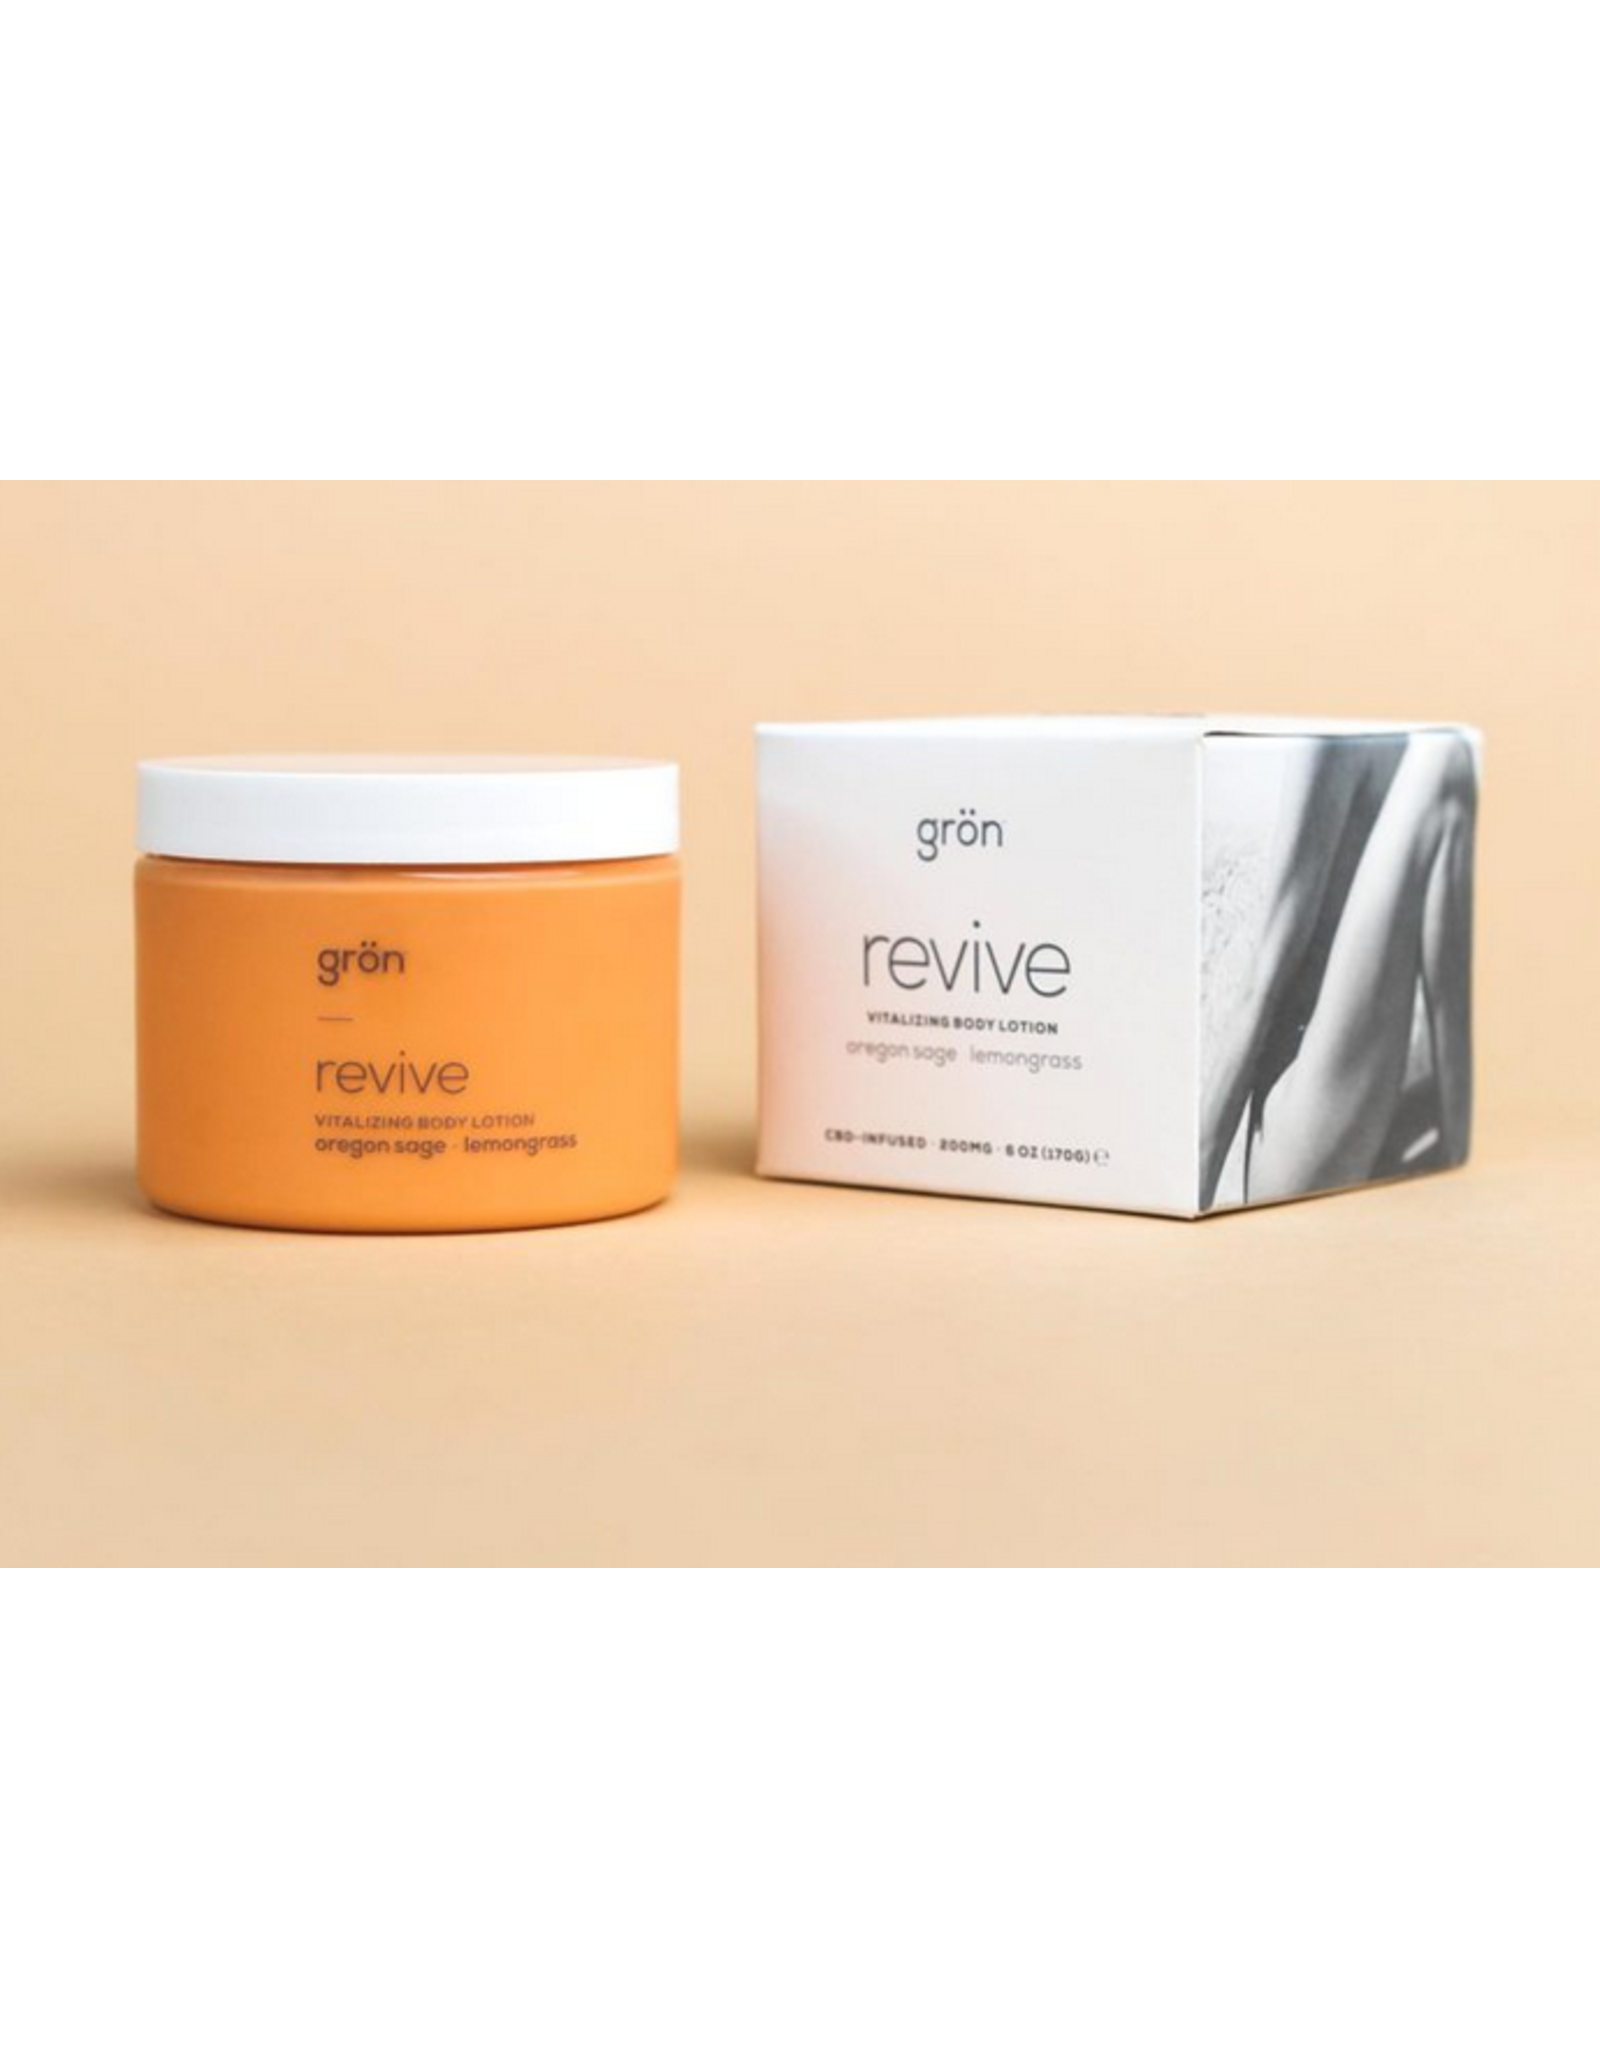 Gron Gron revive body lotion 200mg